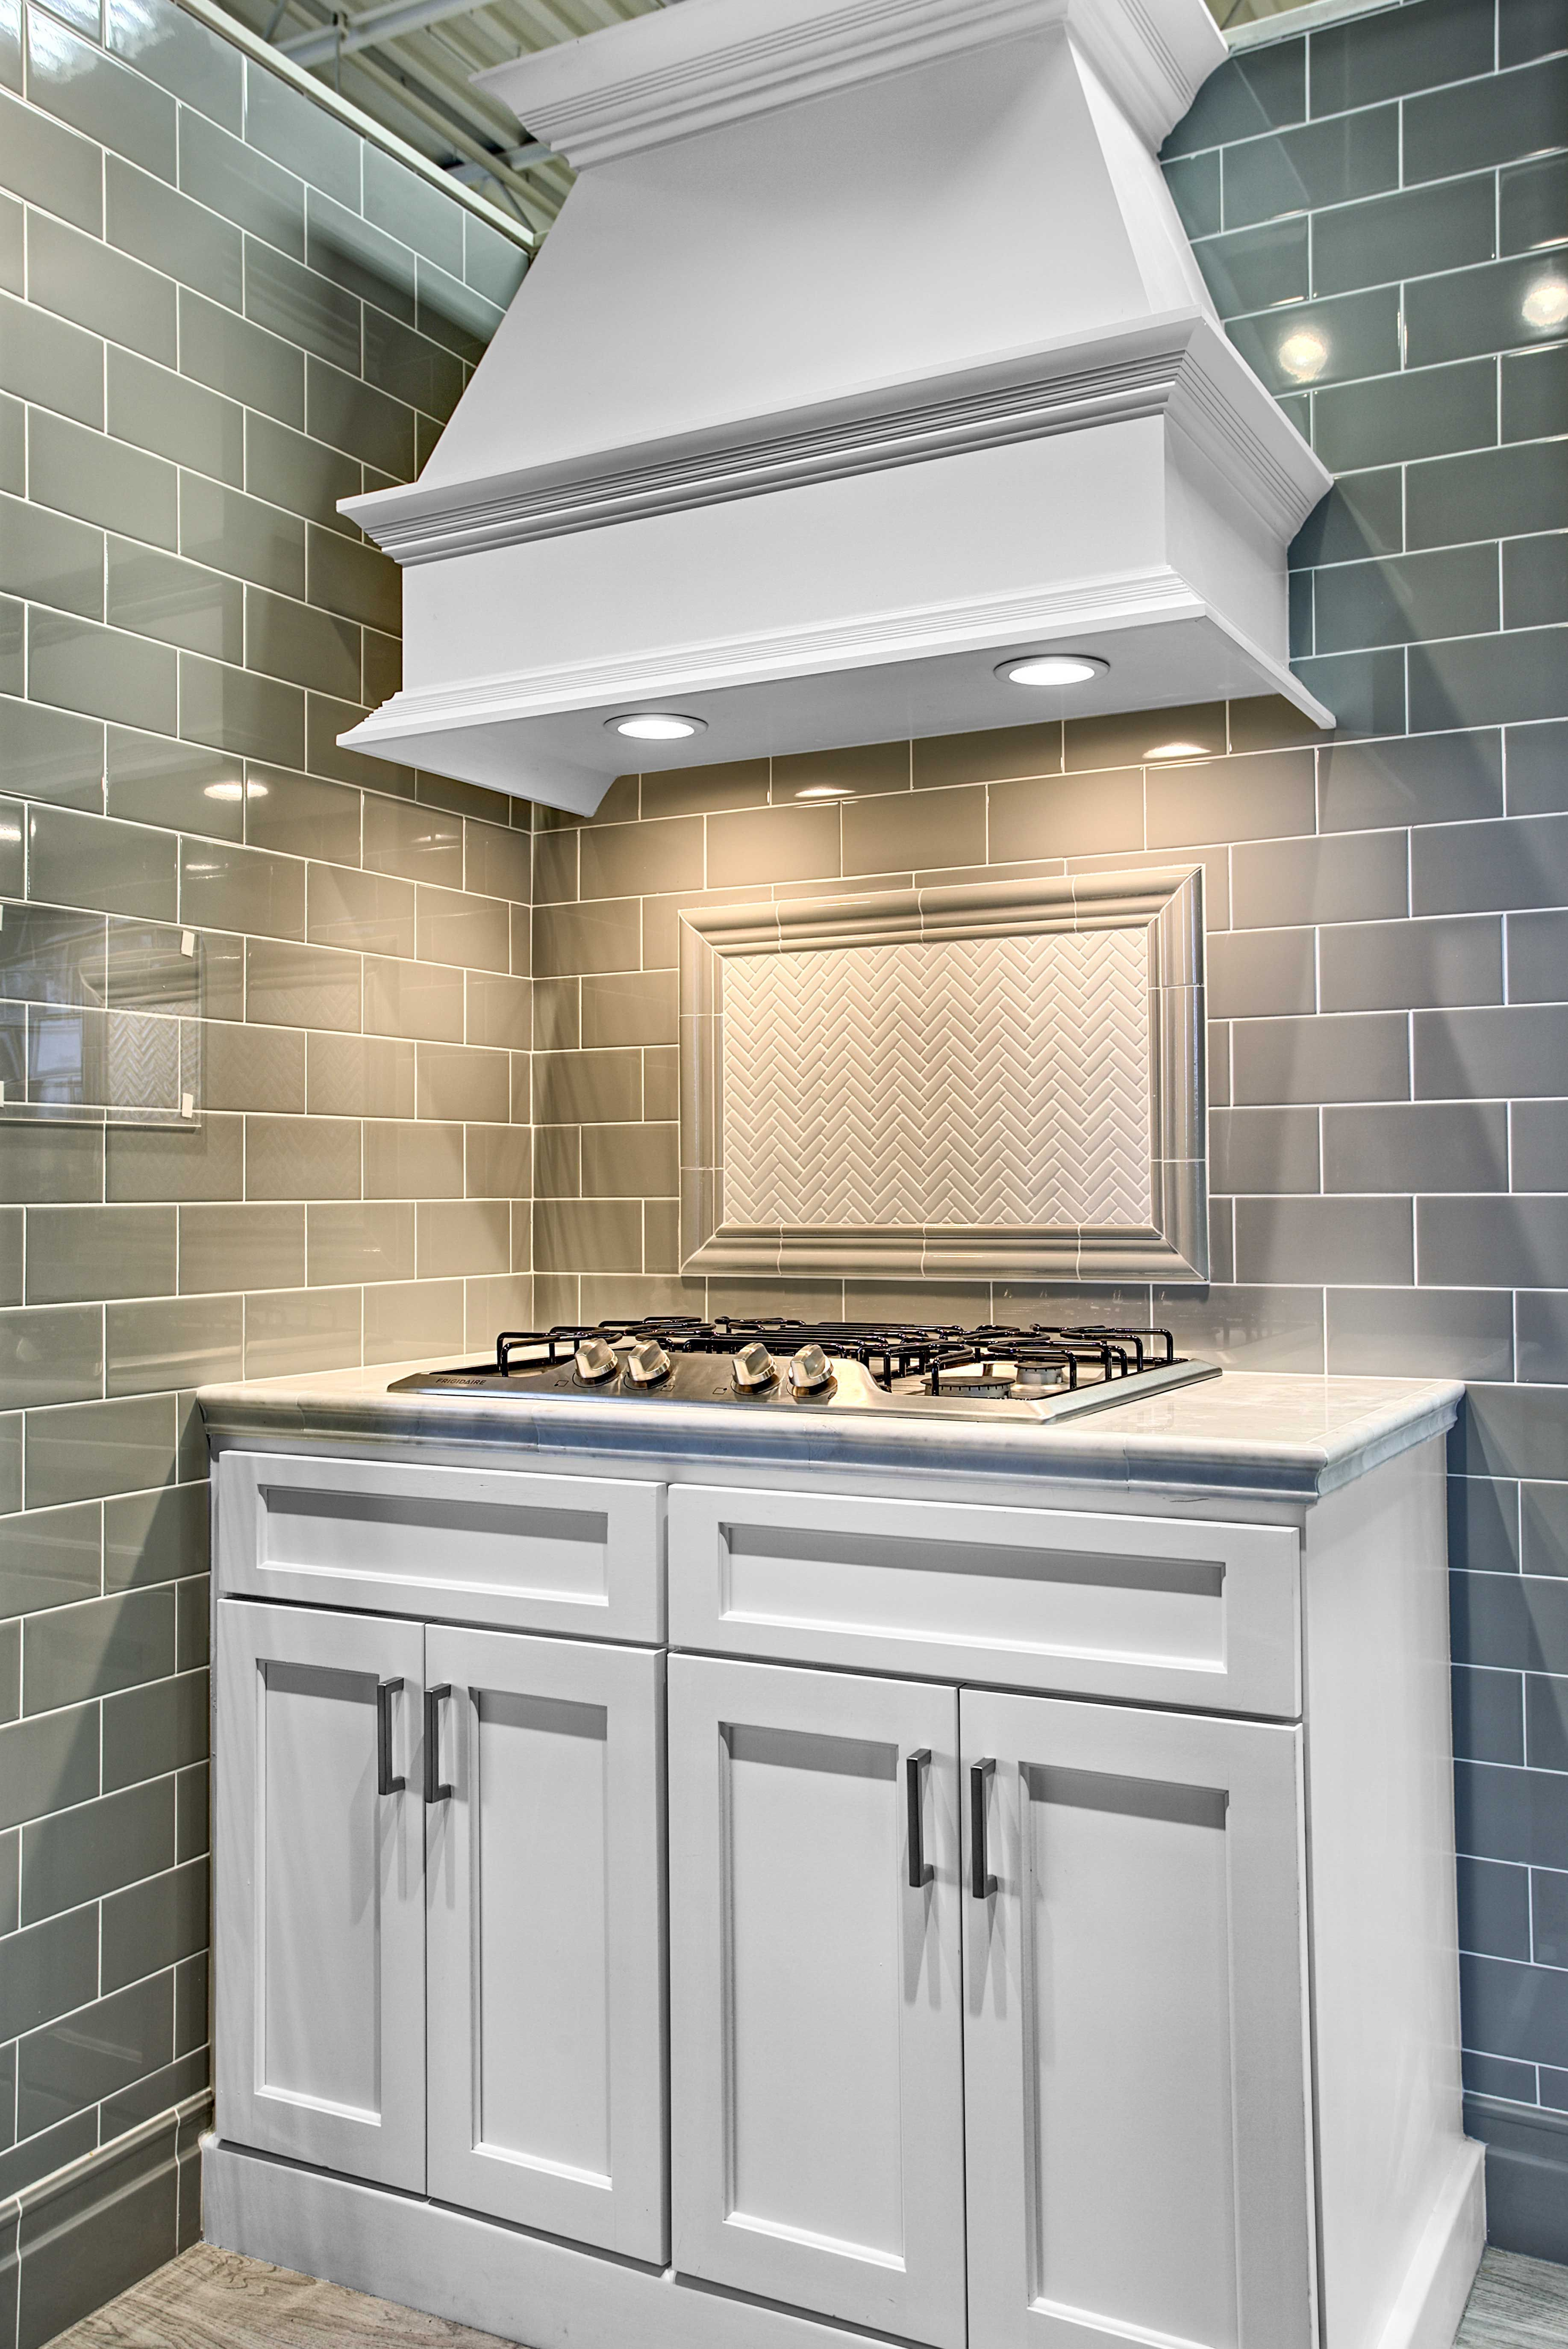 Kitchen wall tile - Imperial Ice Grey Gloss Ceramic Subway Tile ...